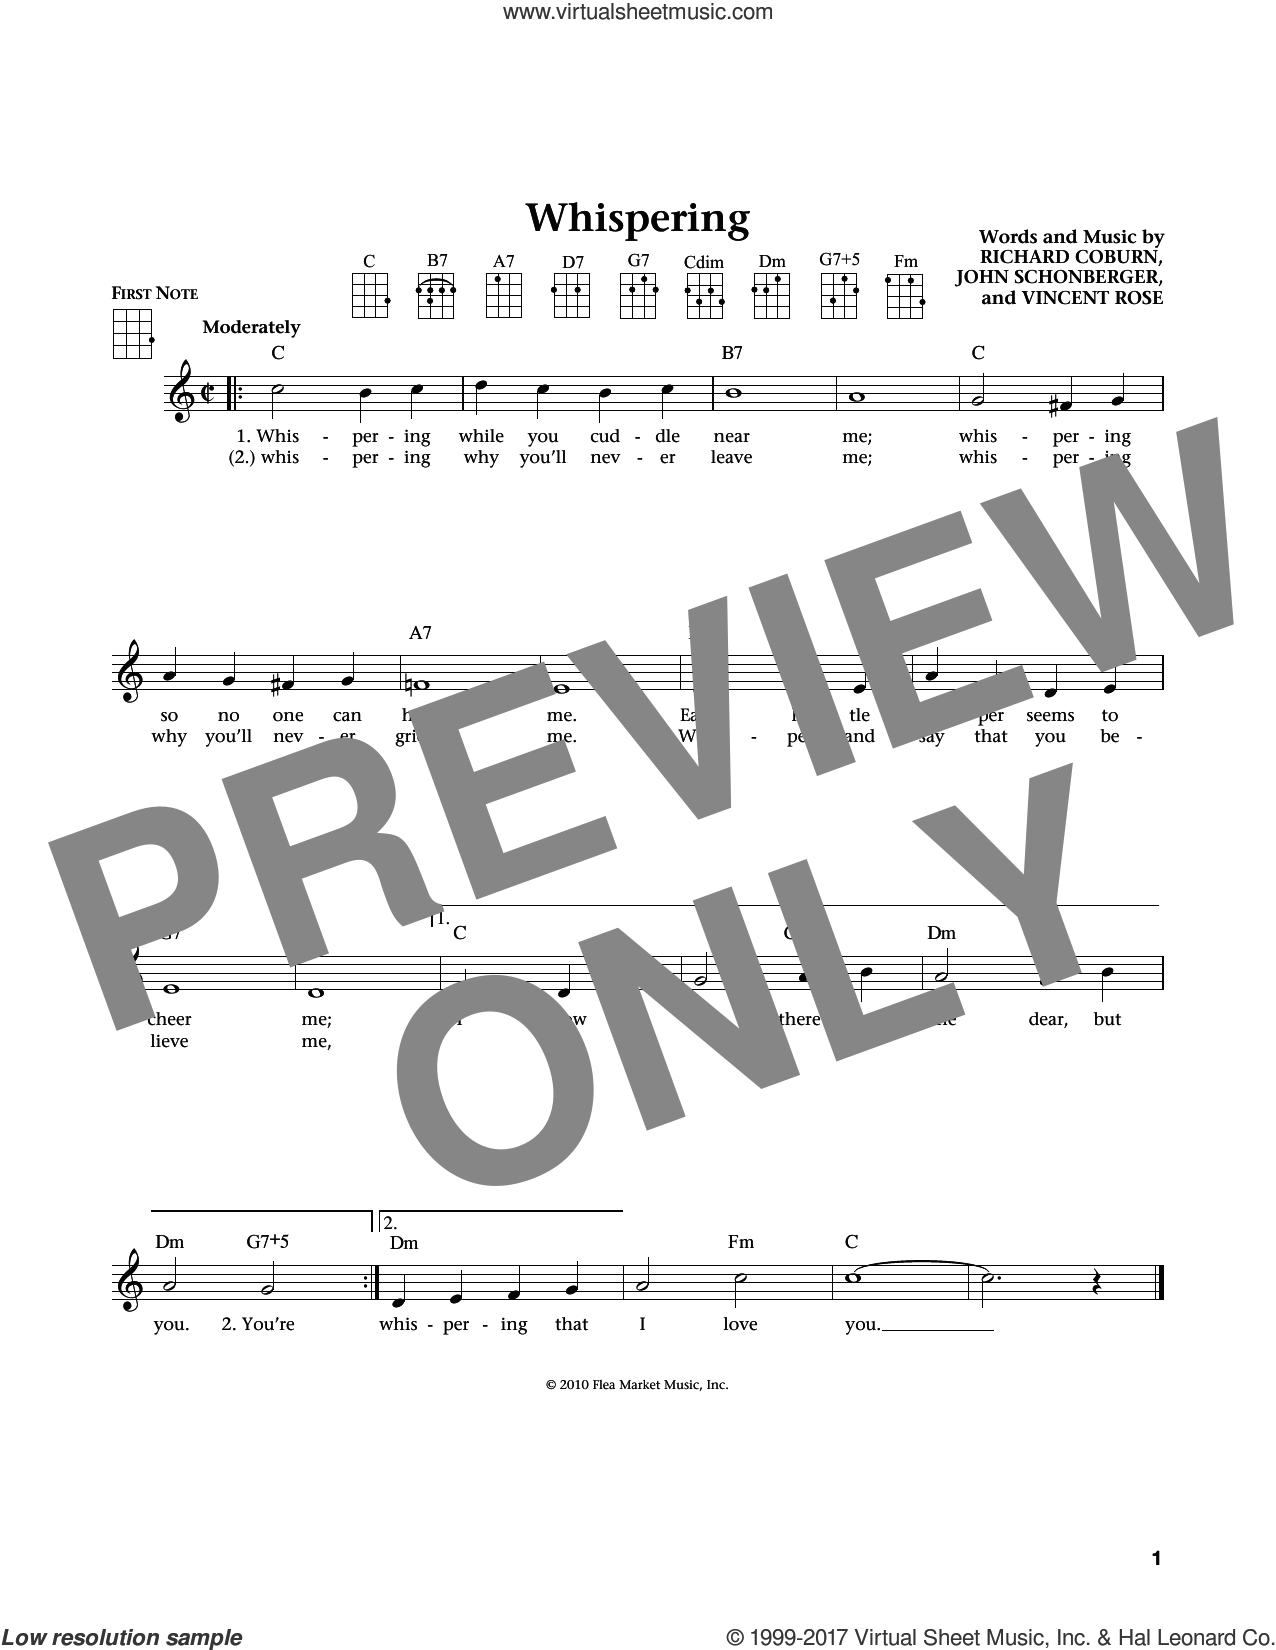 Whispering (from The Daily Ukulele) (arr. Liz and Jim Beloff) sheet music for ukulele by Vincent Rose, Jim Beloff, Liz Beloff, John Schonberger and Richard Coburn, intermediate skill level